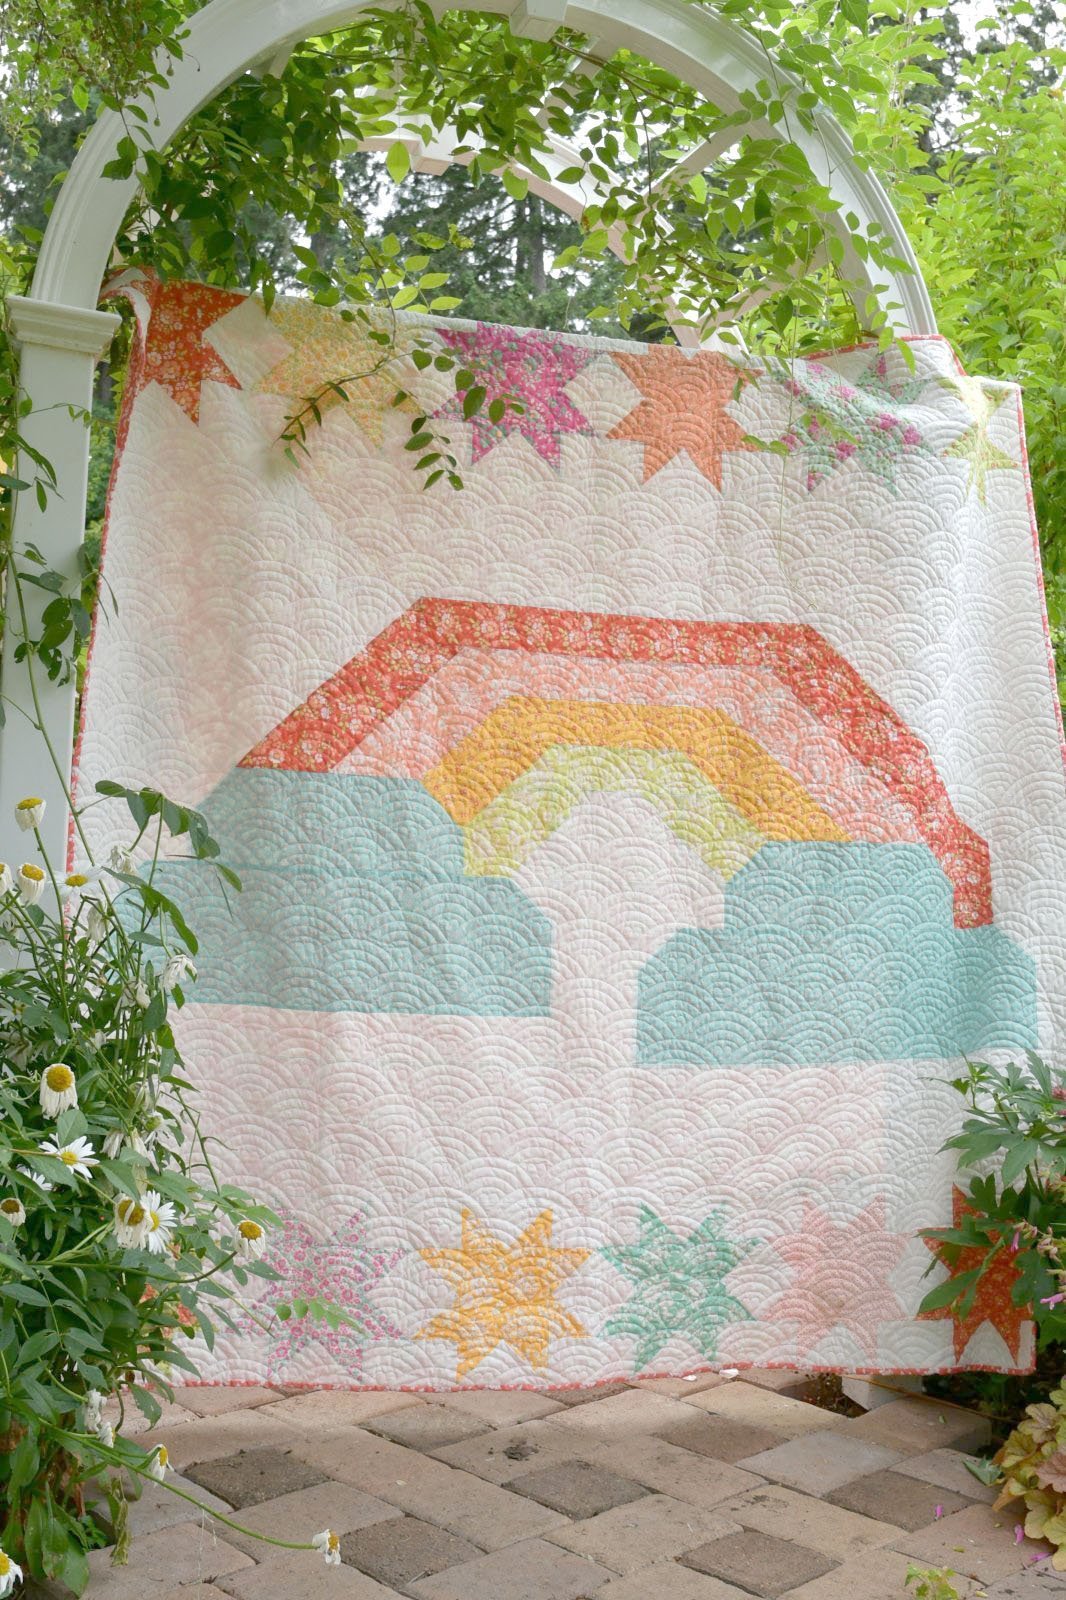 Over the Rainbow Quilt Kit using Canning Day Fabric by Corey Yoder for Moda Fabrics